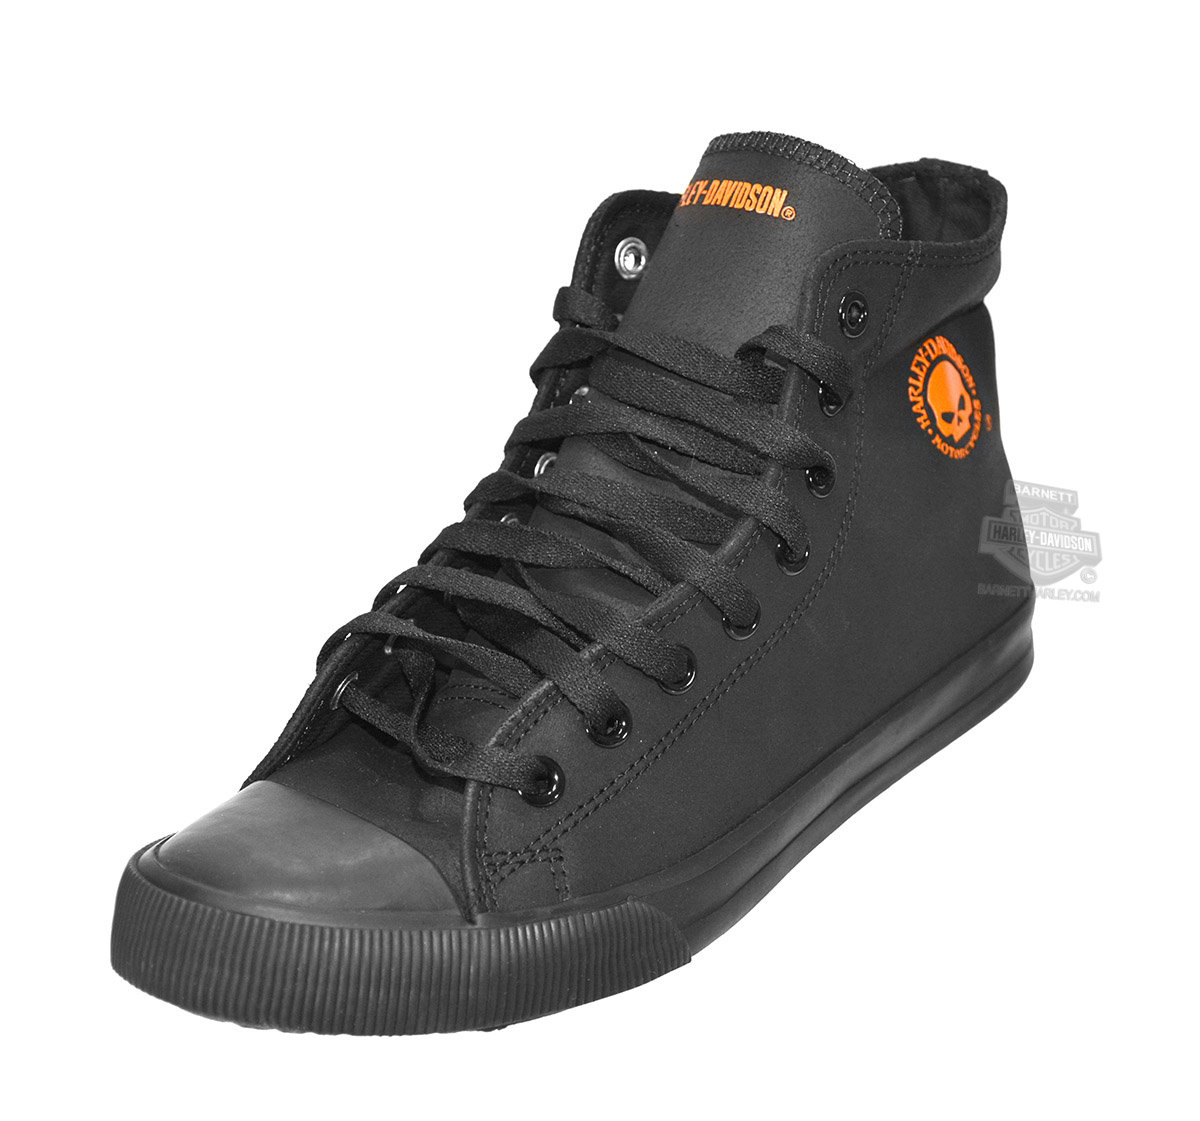 24d382145ceb 93343 - Harley-Davidson® Mens Baxter with Orange Willie G Skull ...